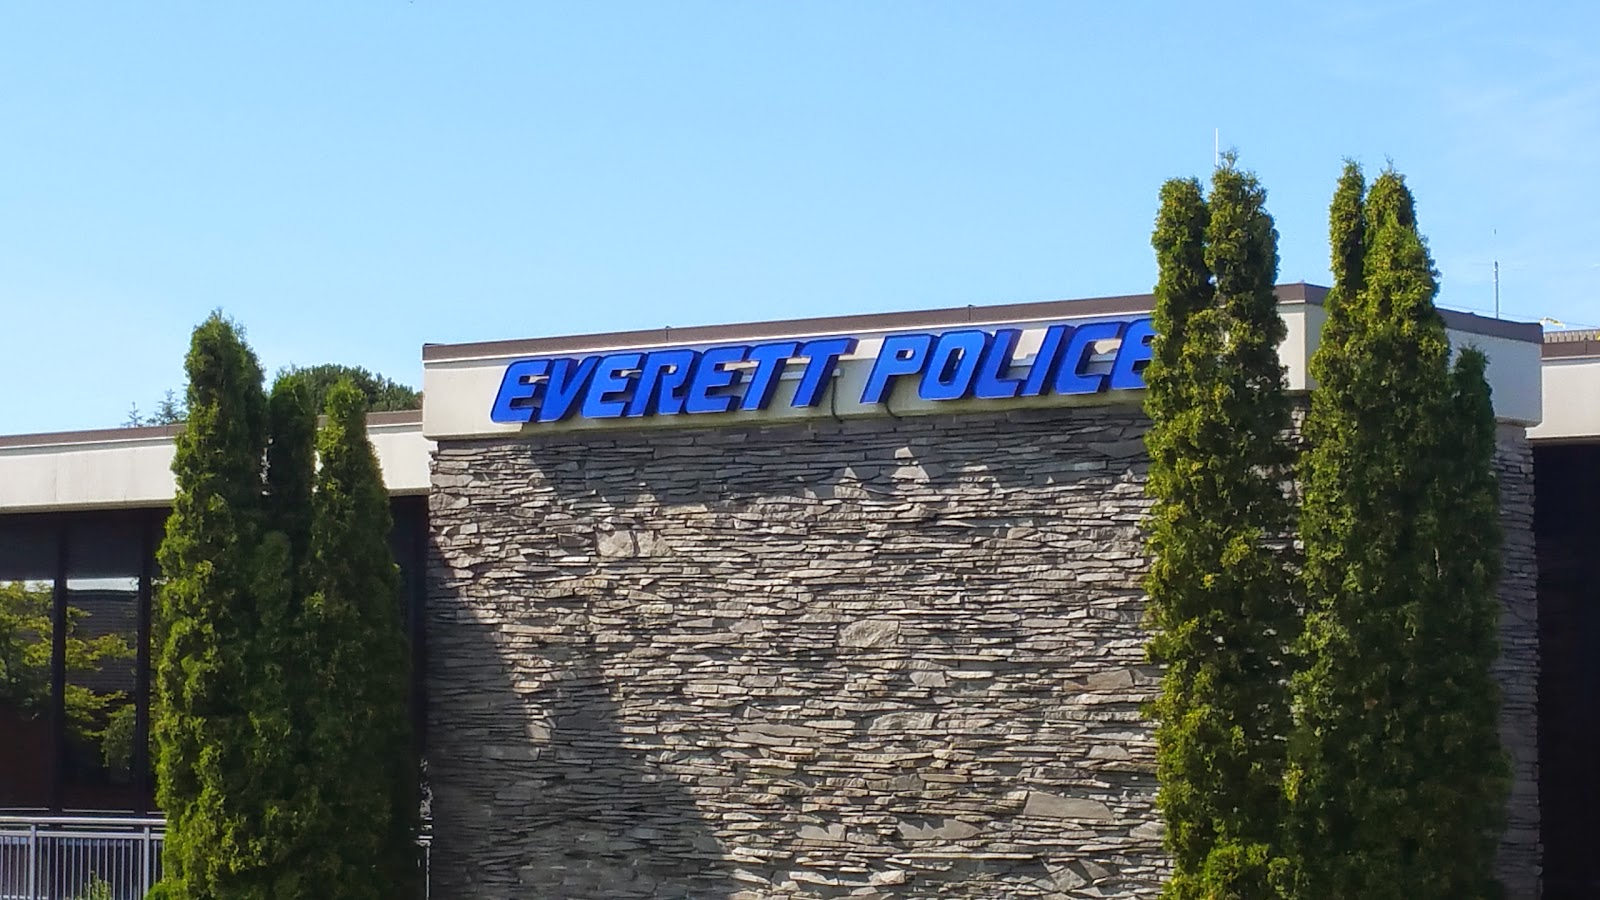 Everett Police station use's a question able font.